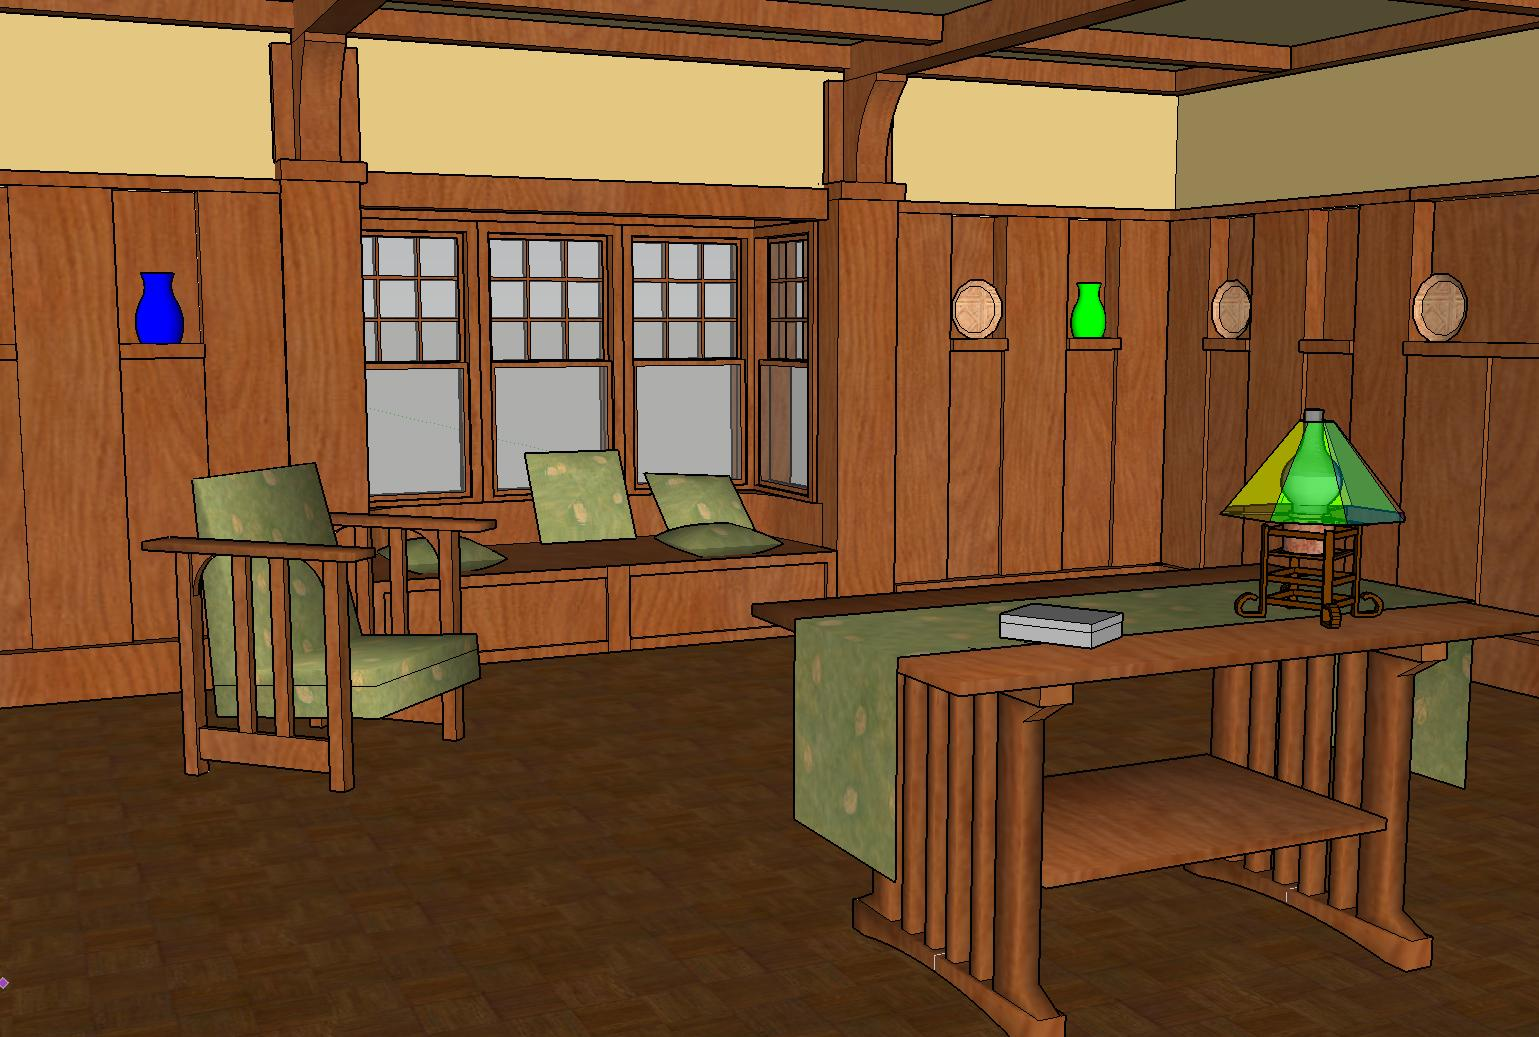 7 Edges to Rubies - The Complete SketchUp Tutorial